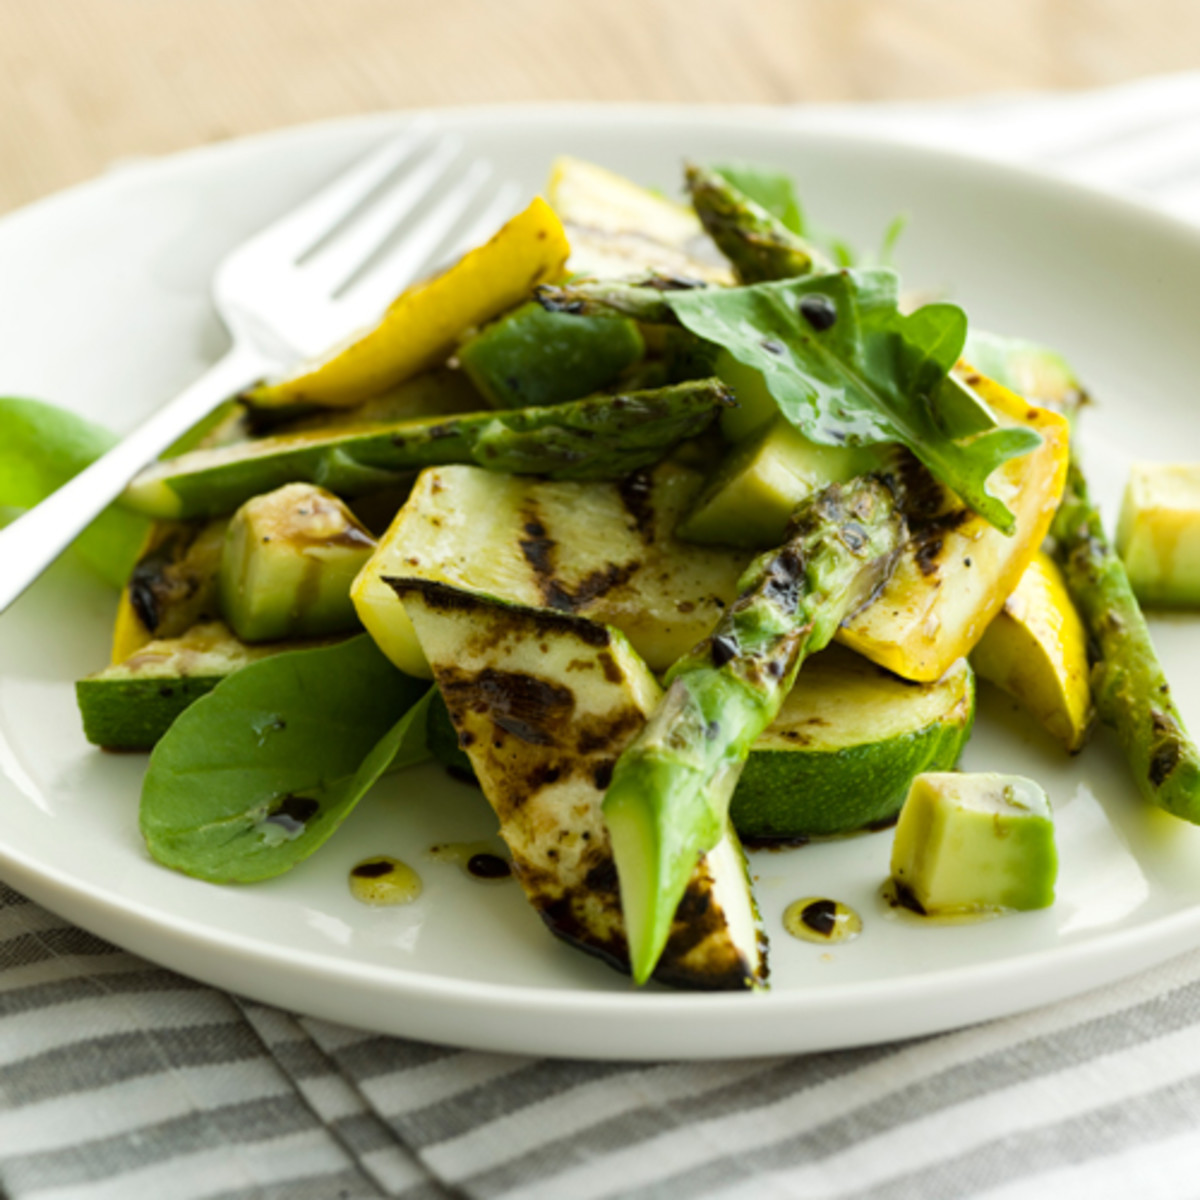 Grilled Summer Squash  Grilled Zucchini and Summer Squash Salad with Avocado